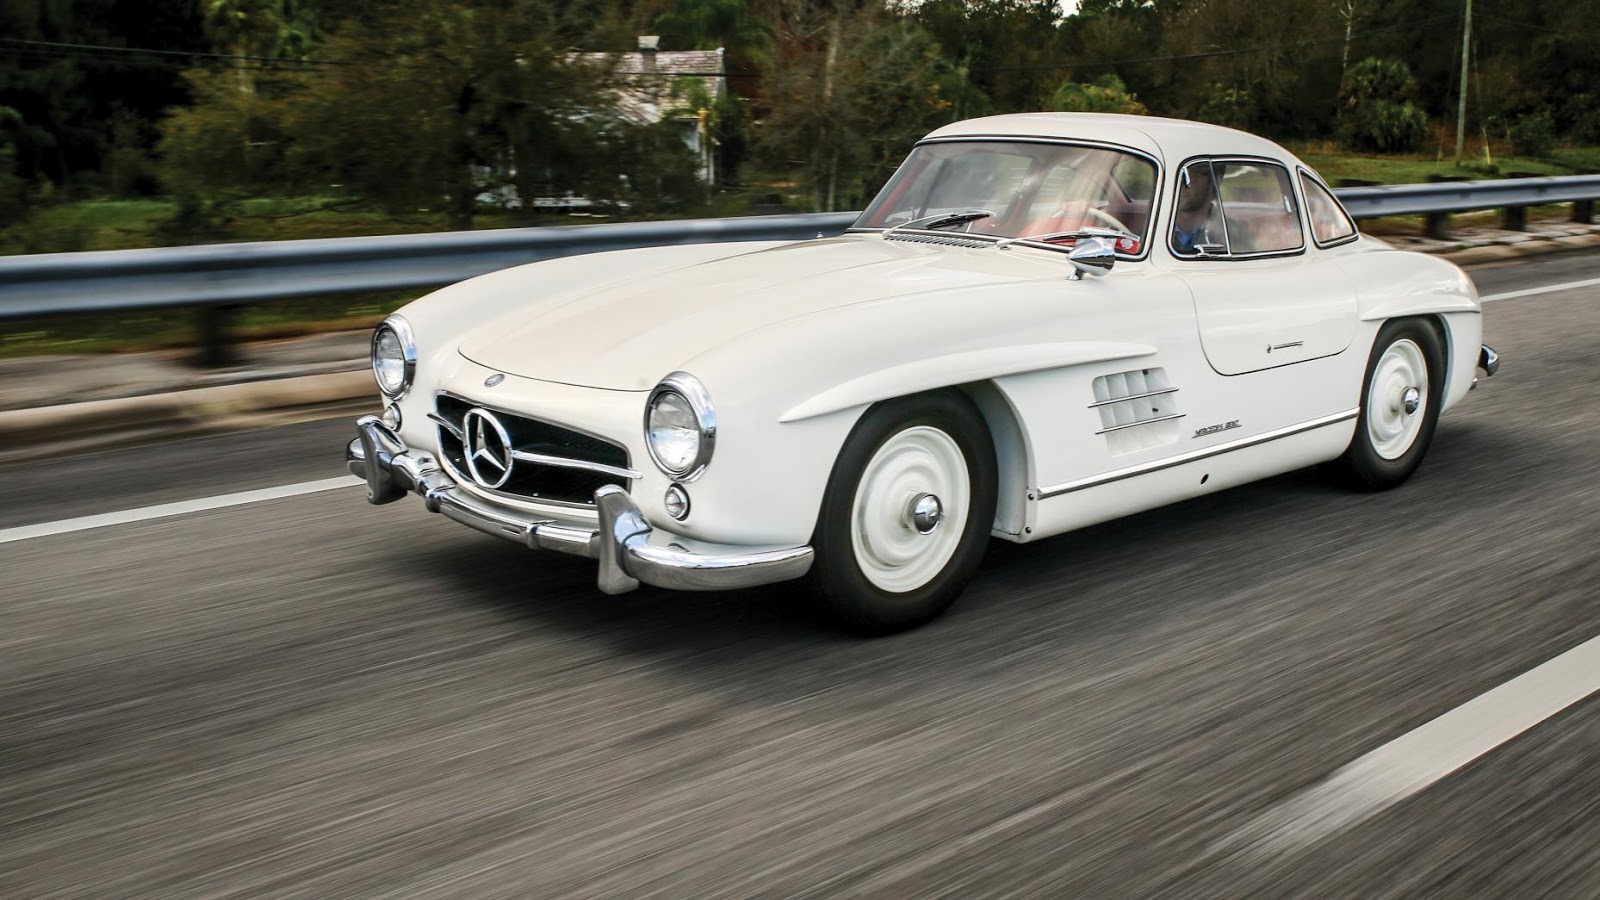 1955 Mercedes-Benz 300 SL Gullwing: $1,265,000